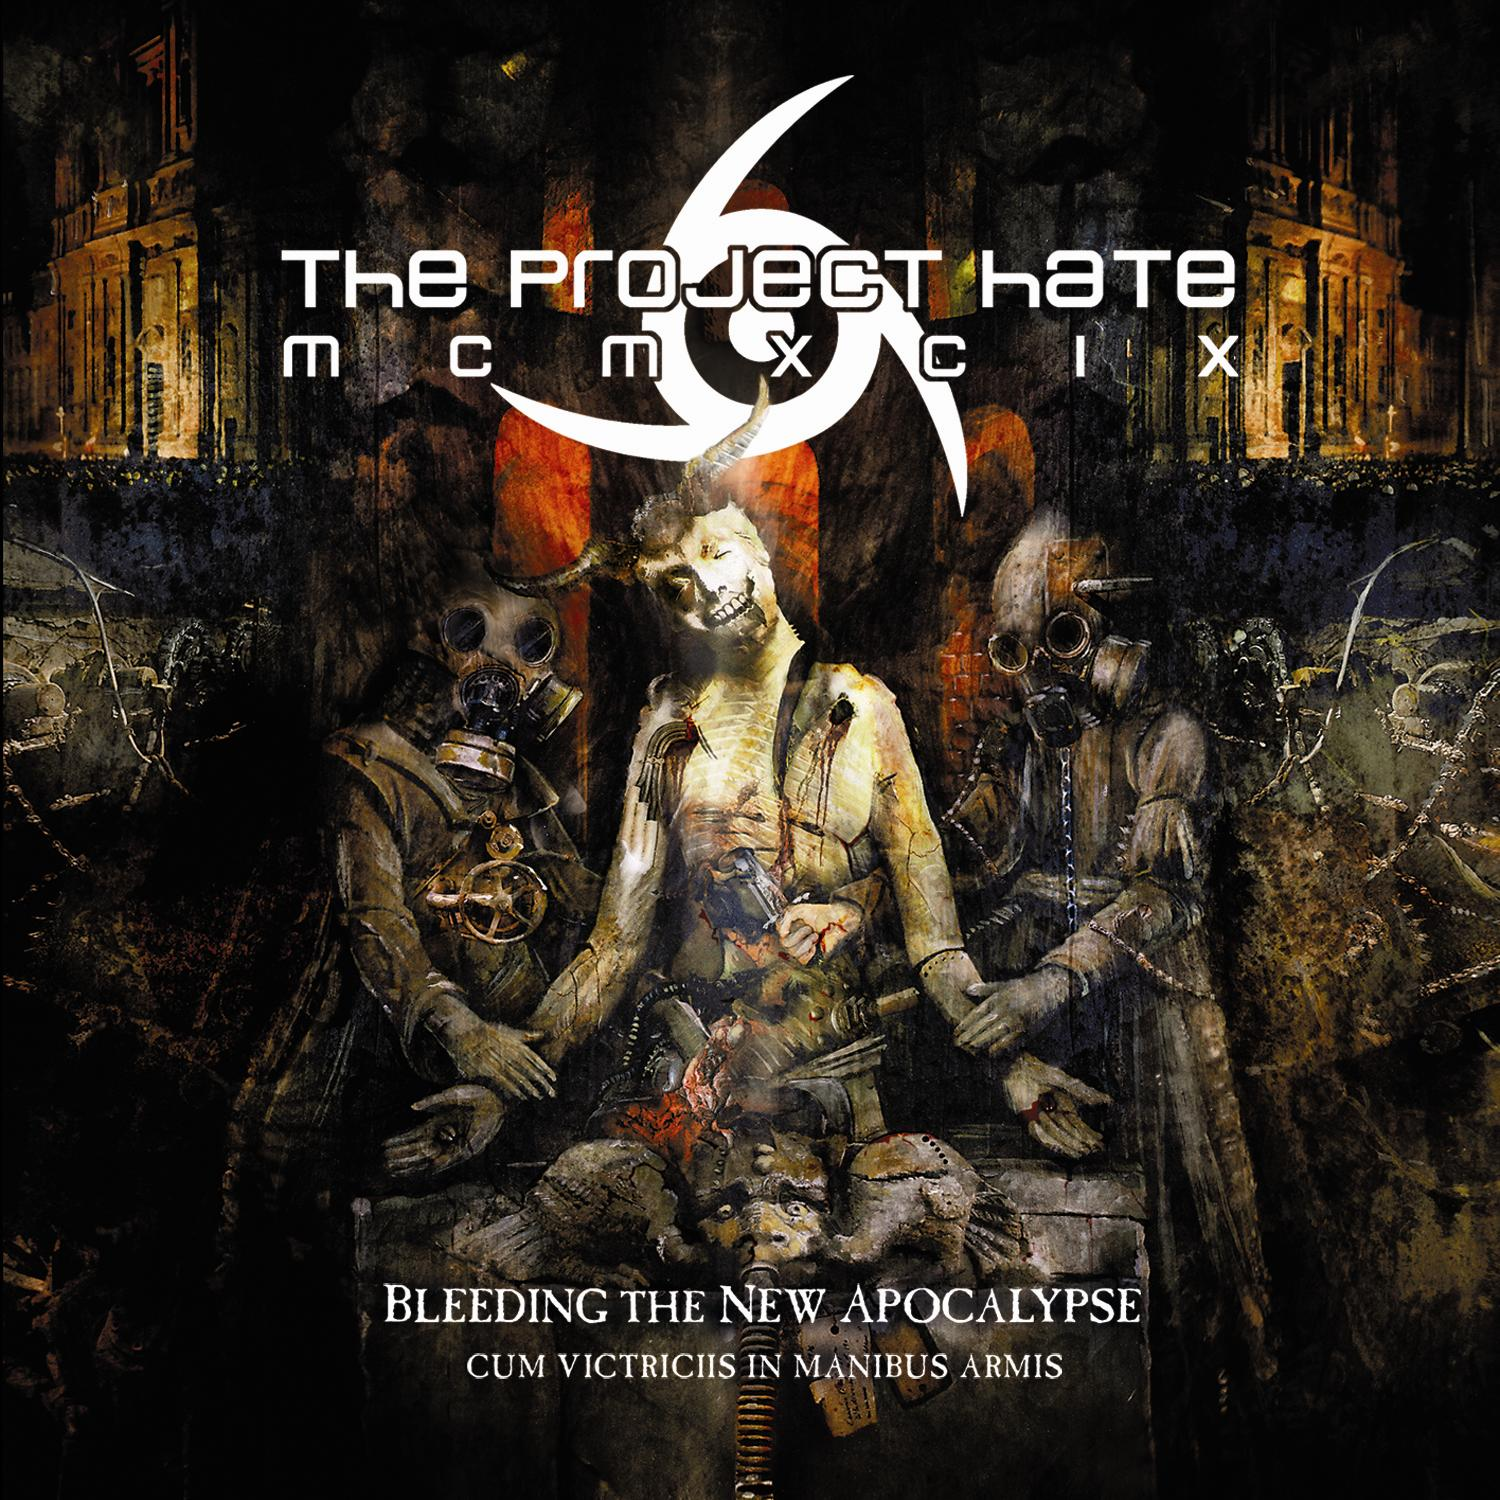 The Project Hate MCMXCIX – Bleeding the New Apocalypse (Cum Victriciis in Manibus Armis) Review